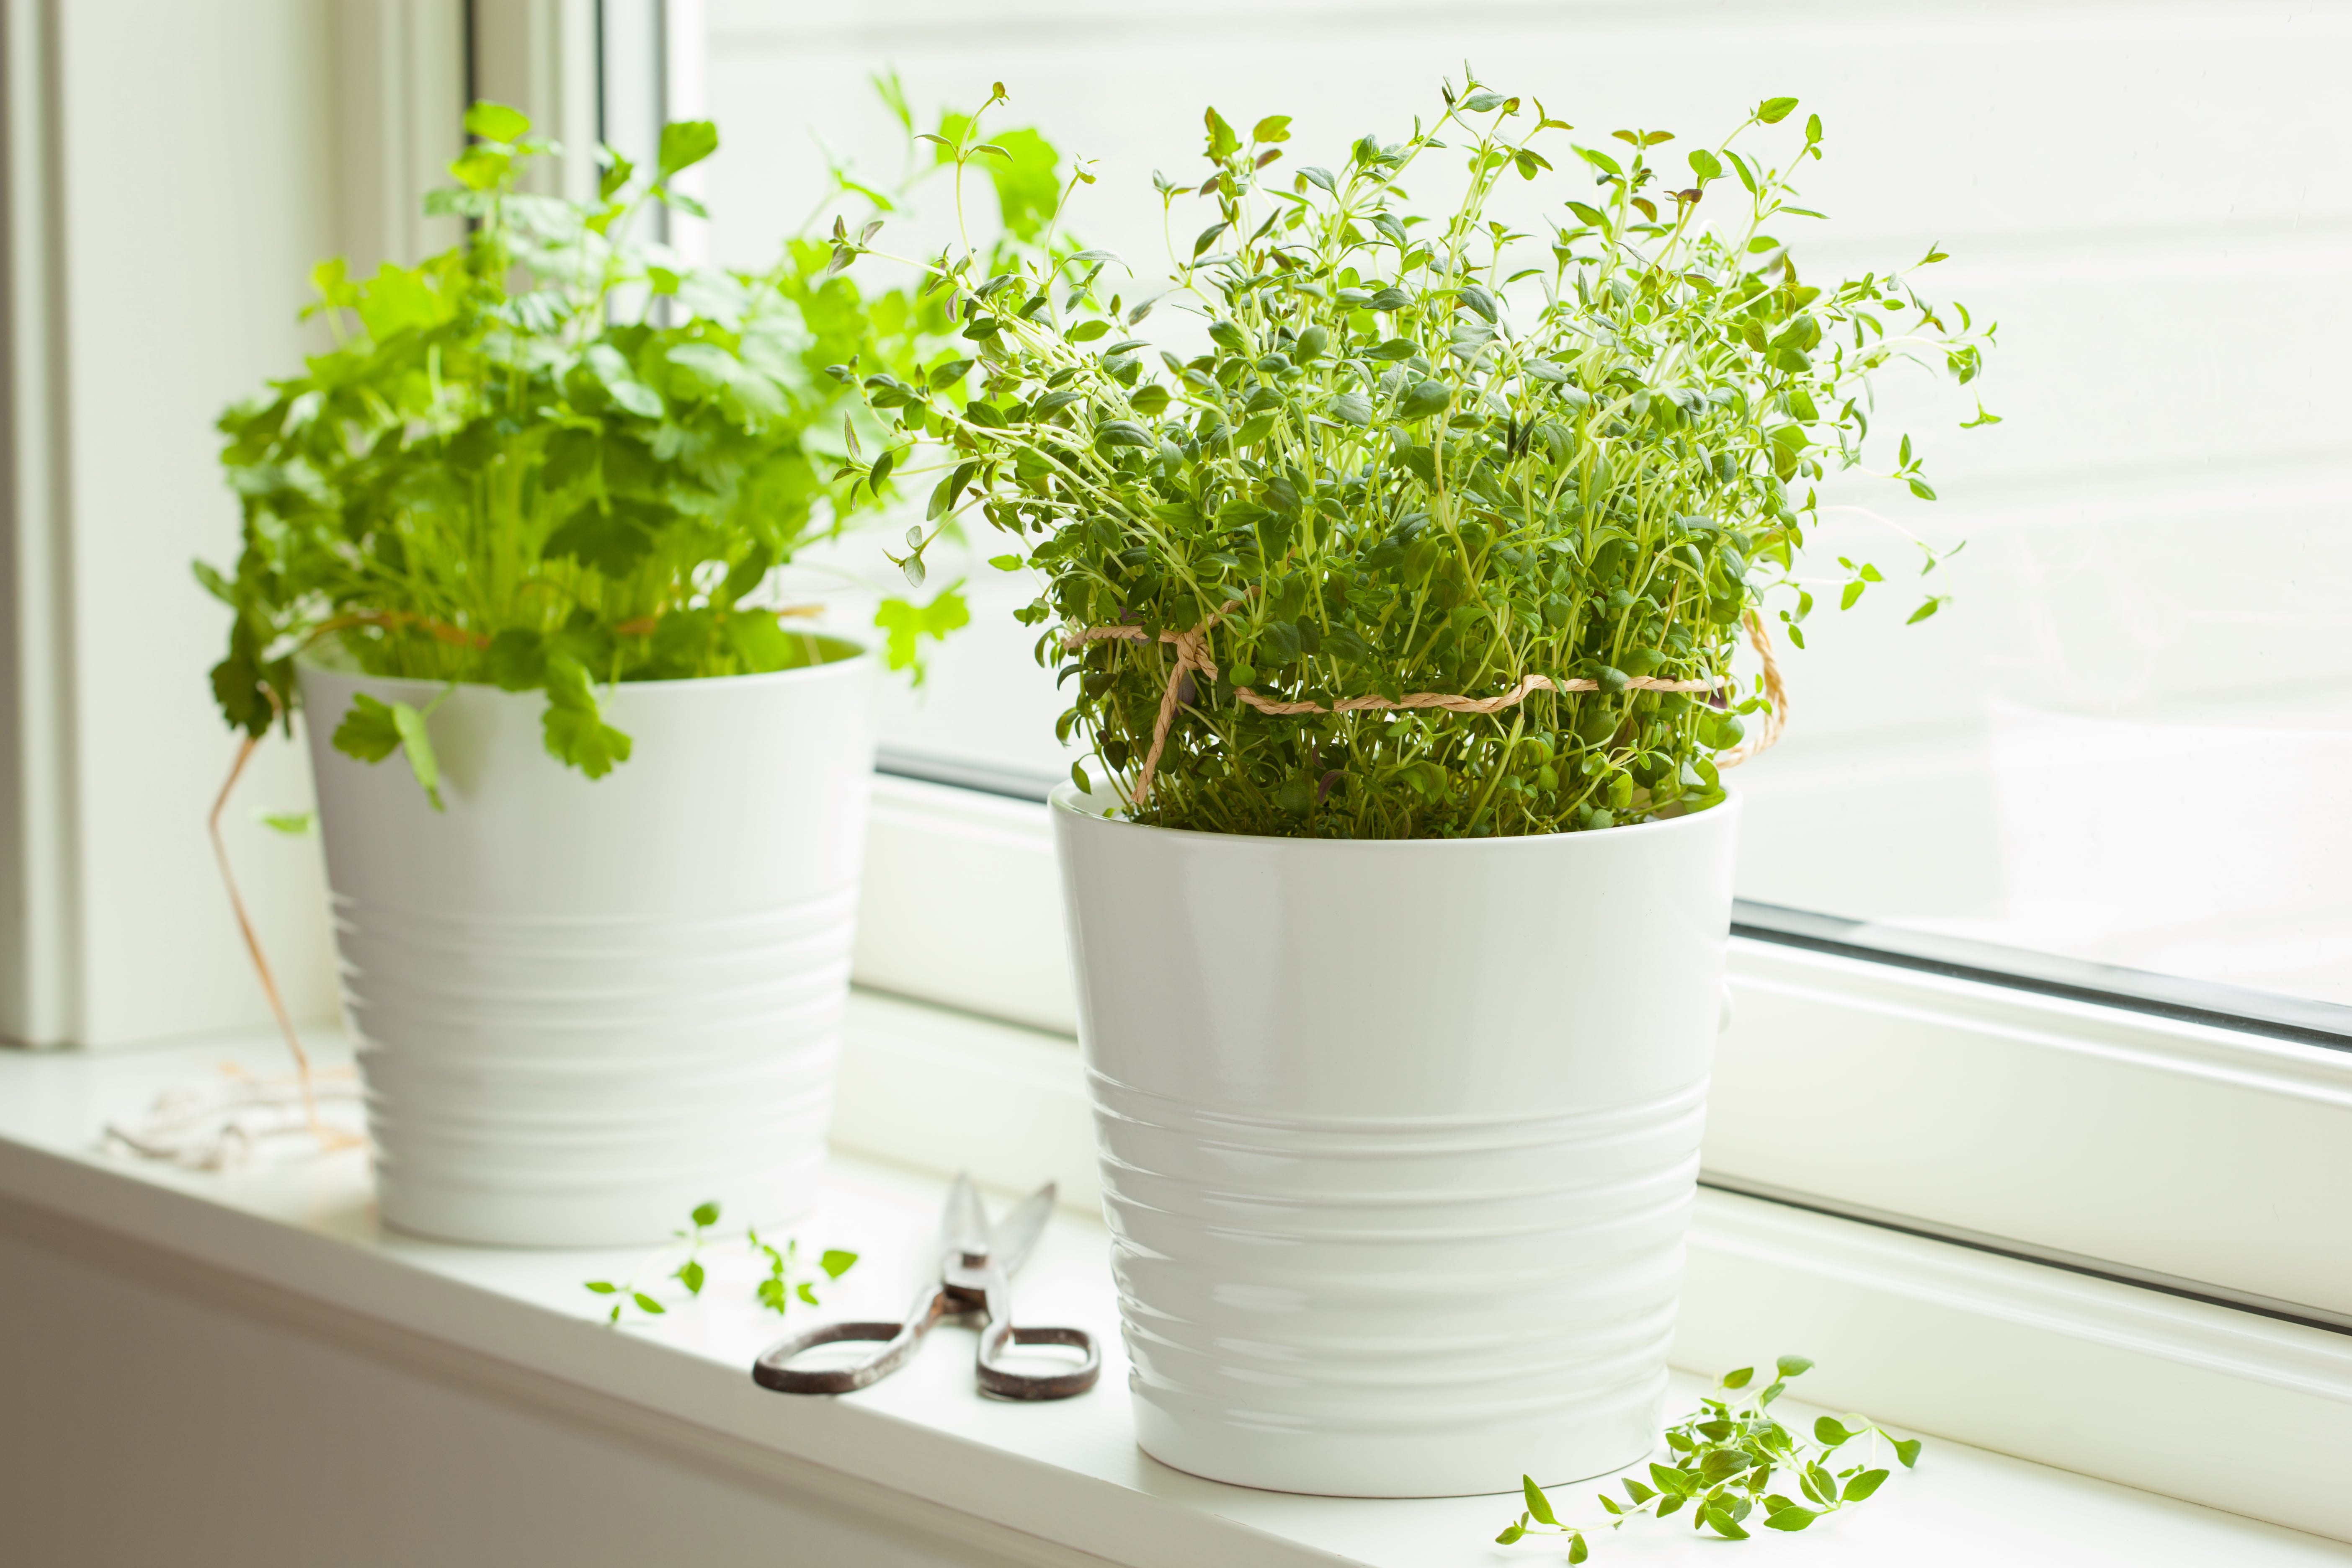 fresh-thyme-and-cilantro-herbs-in-white-pot-on-win-P9LLHFX-min